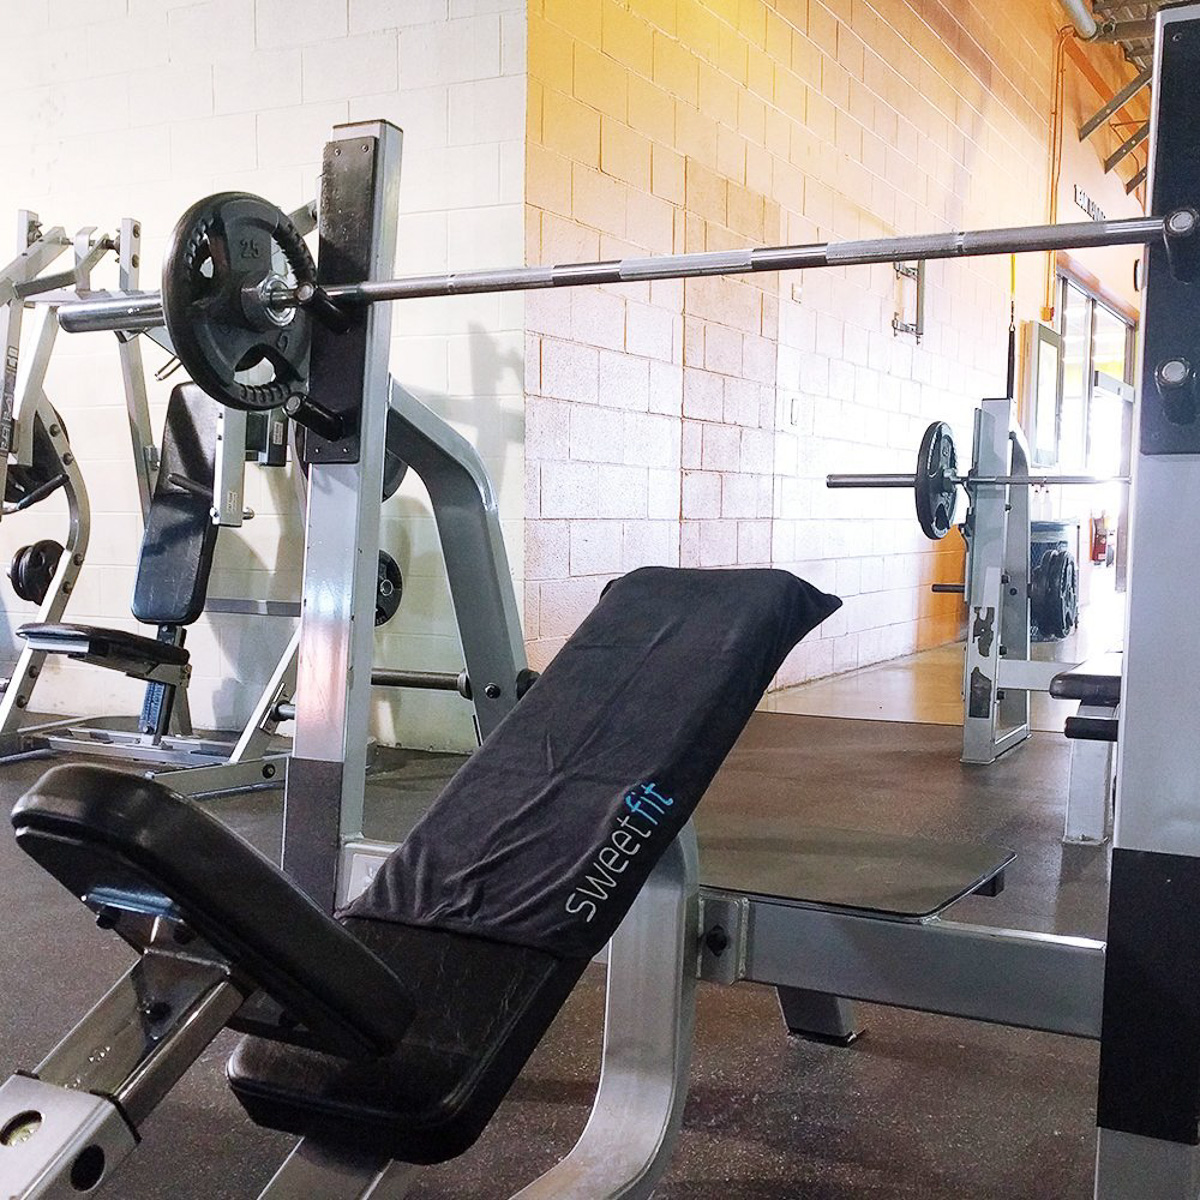 thumbnail 14 - Antibacterial-Gym-Towel-Fits-Securely-Over-Workout-Bench-Phone-Keys-Zip-Pocket